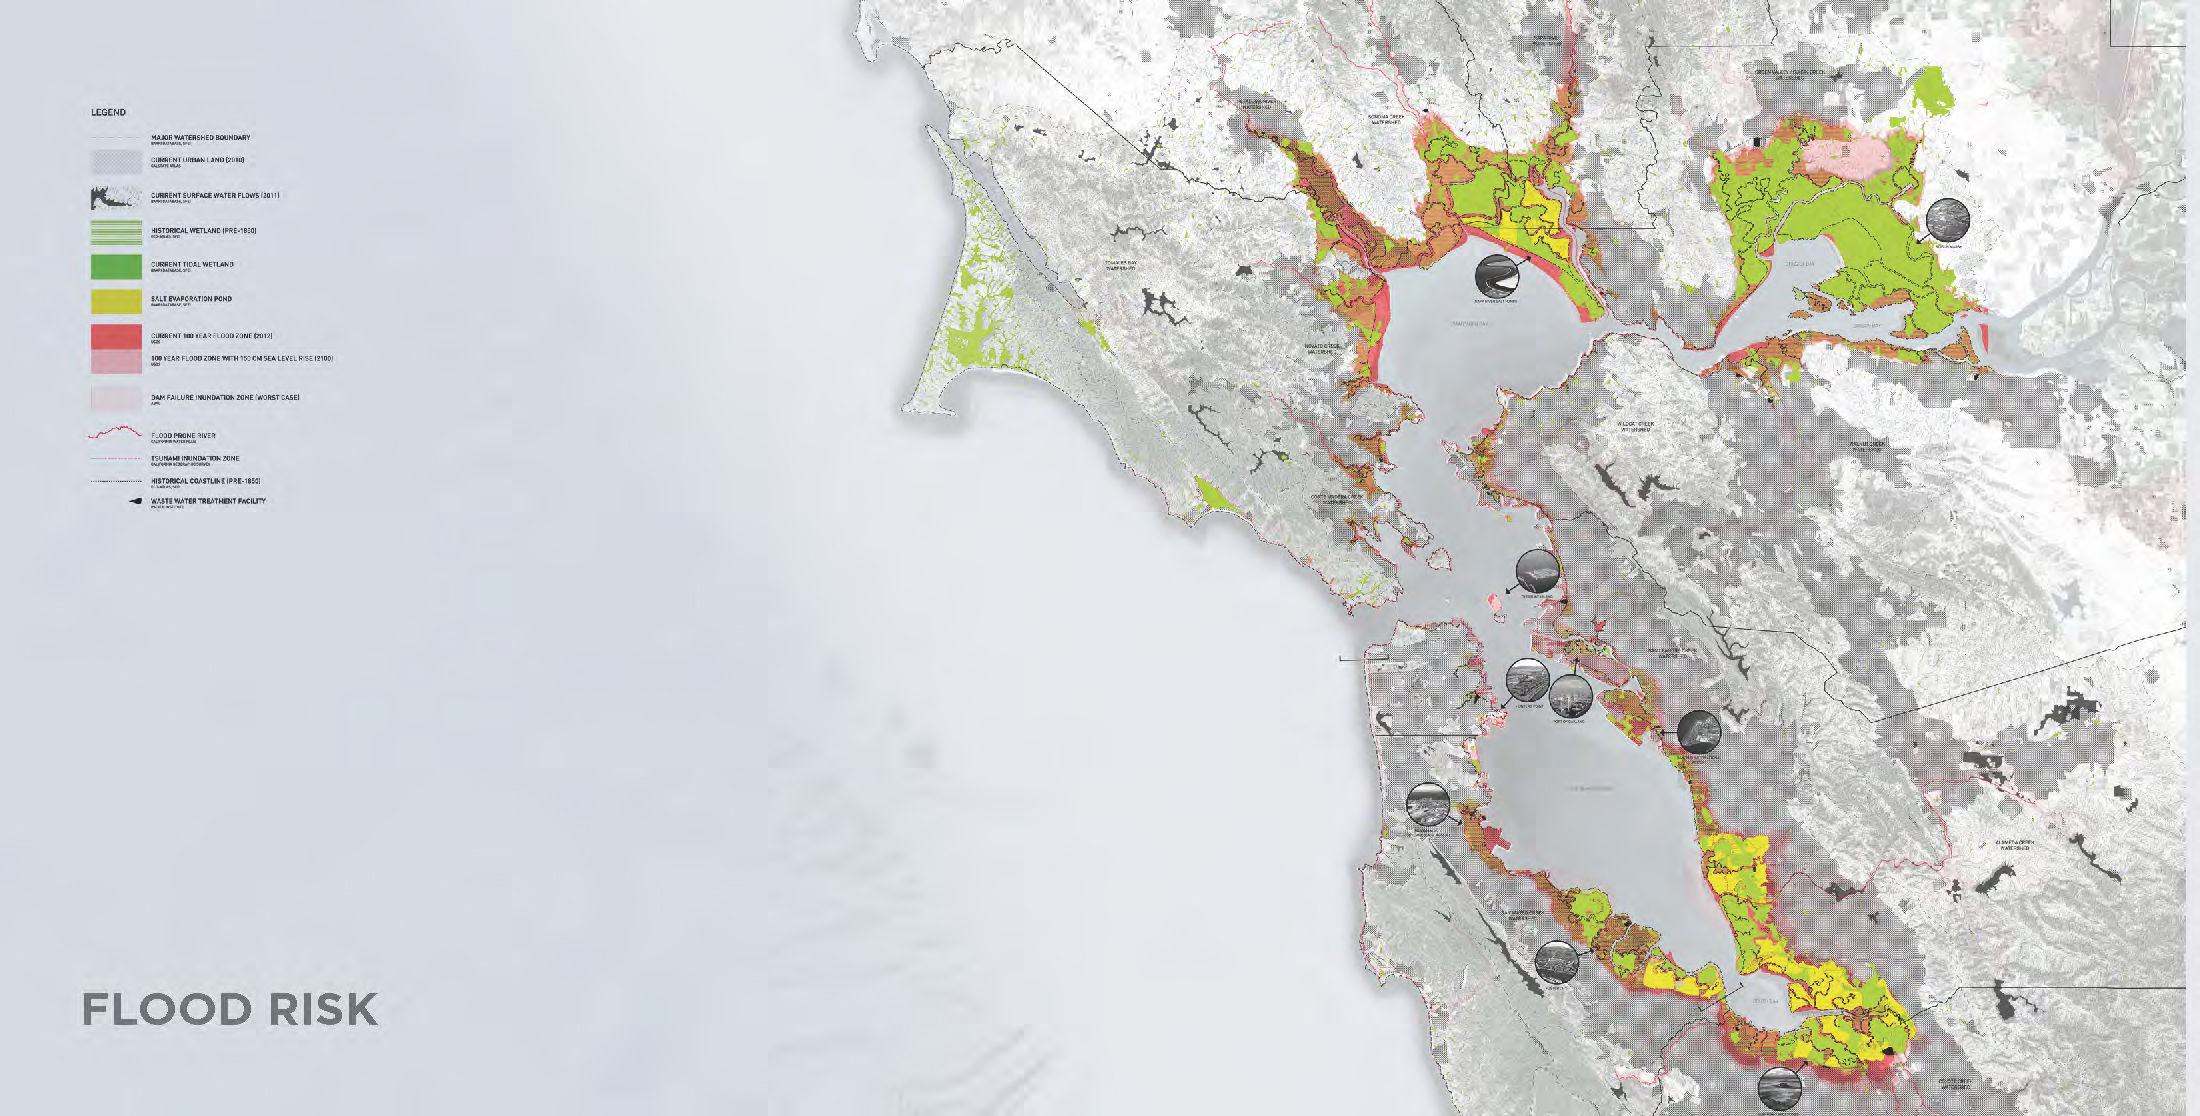 Flood risk mapping of bay area - David Moses, Phebe Dudek, Kyle Barker